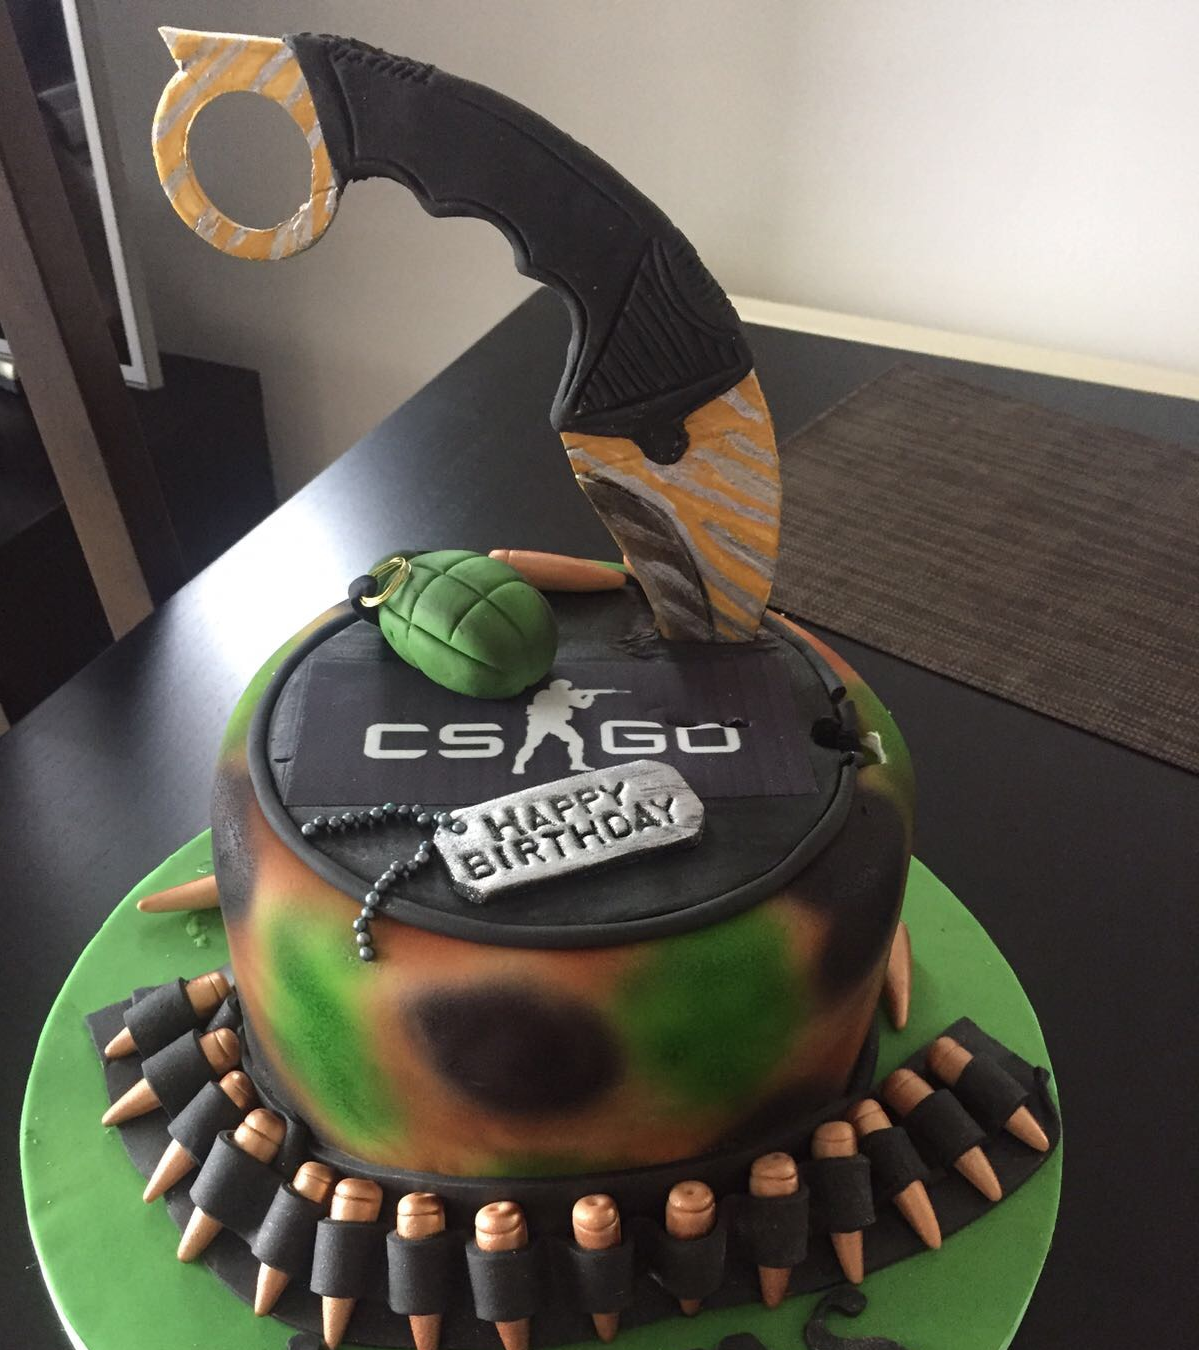 My Csgo Themed Birthday Cake Games Globaloffensive Csgo